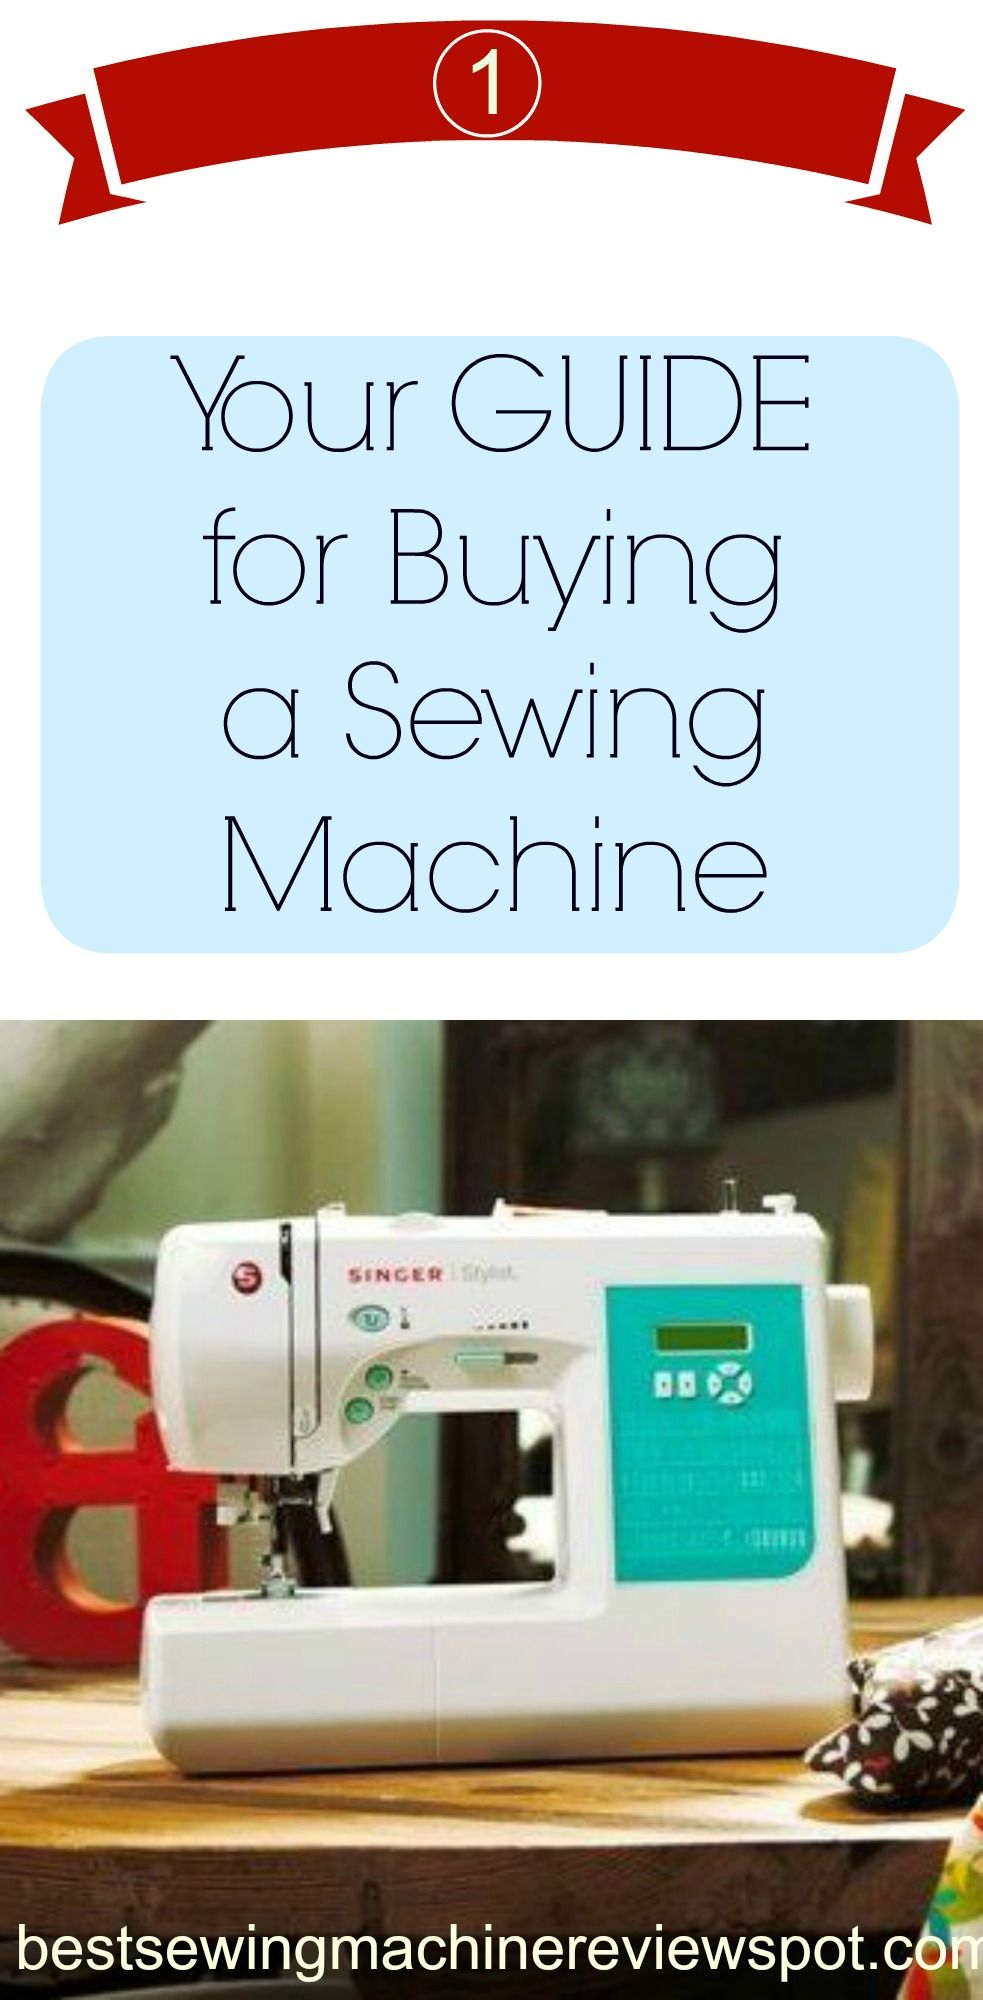 Sewing Machine Reviews - Research and Comparison  http://bestsewingmachinereviewspot.com/buying-a-sewing-machine/